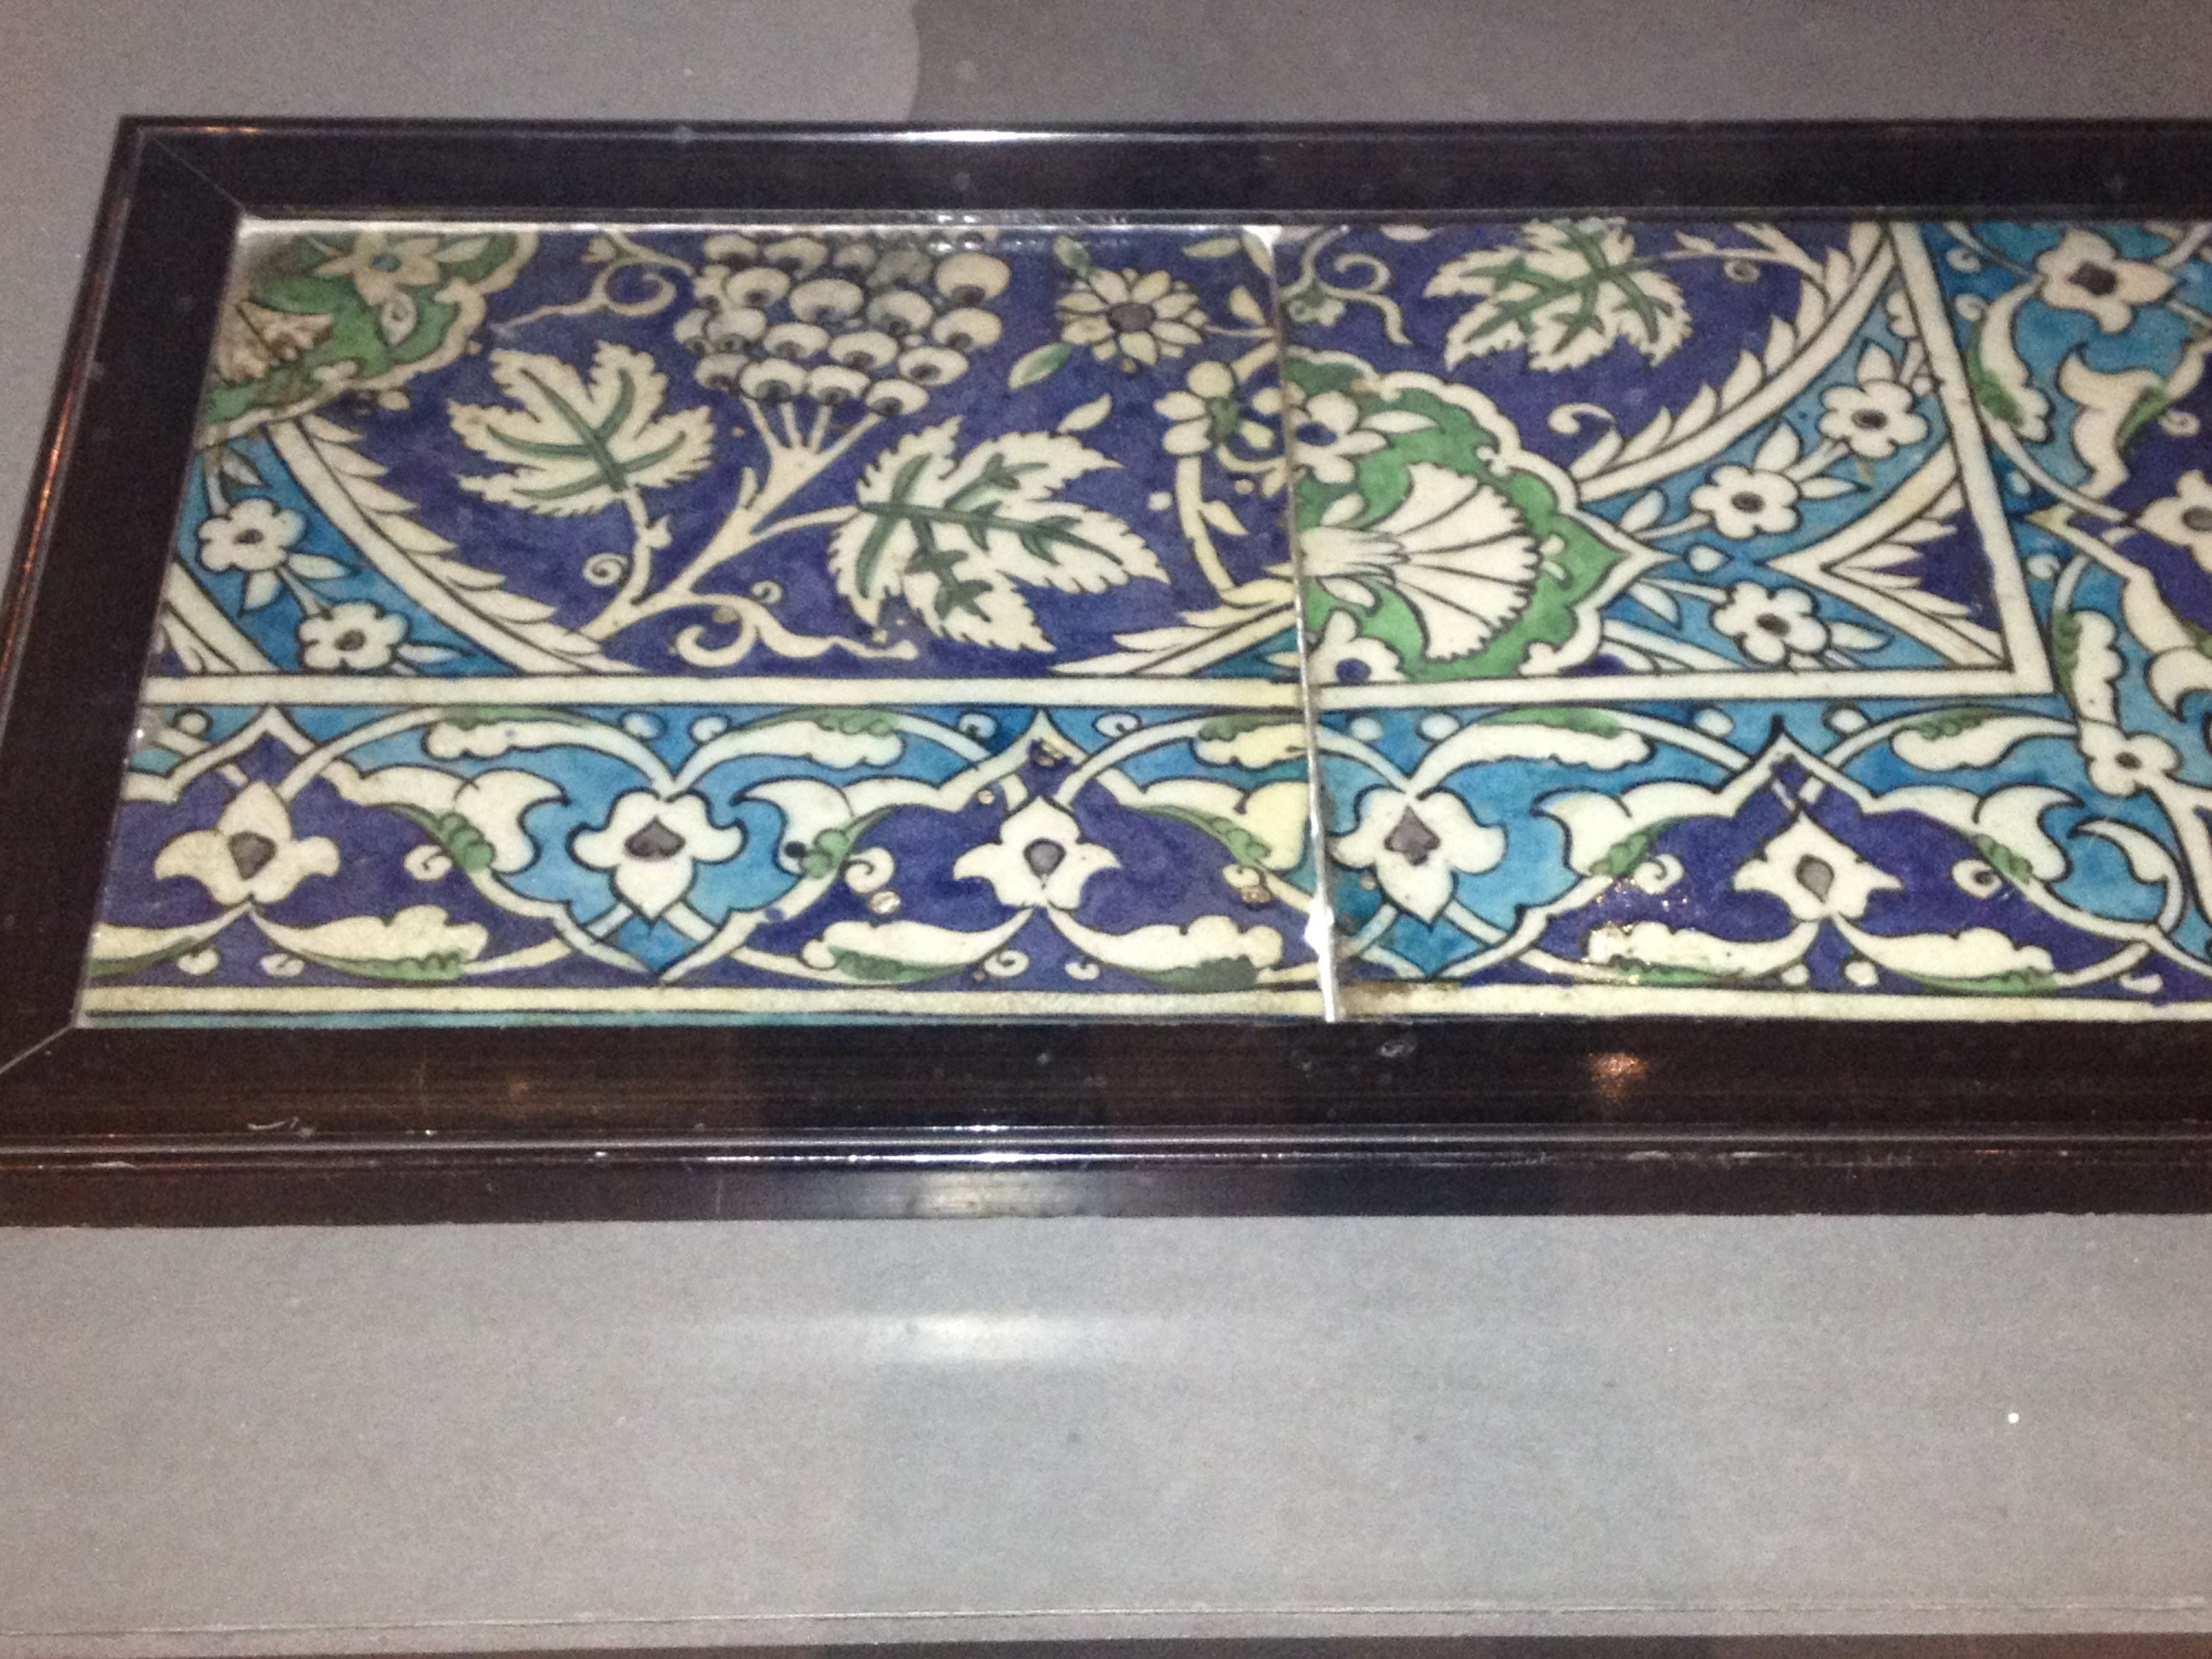 Tile in the collection of the Museum of the Order of St John ...